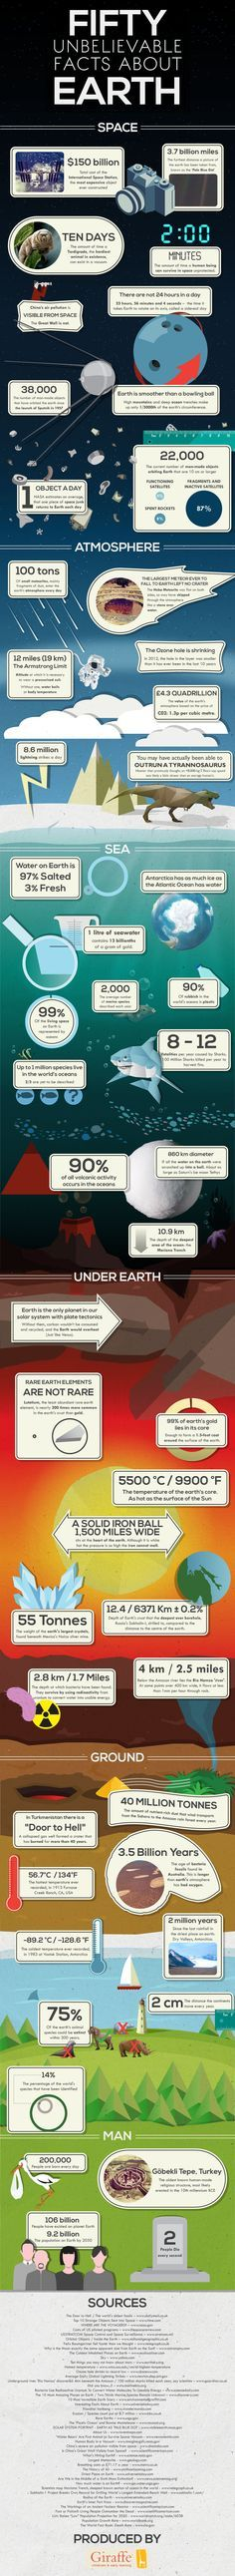 Amazing Facts About Earth (Infographic)